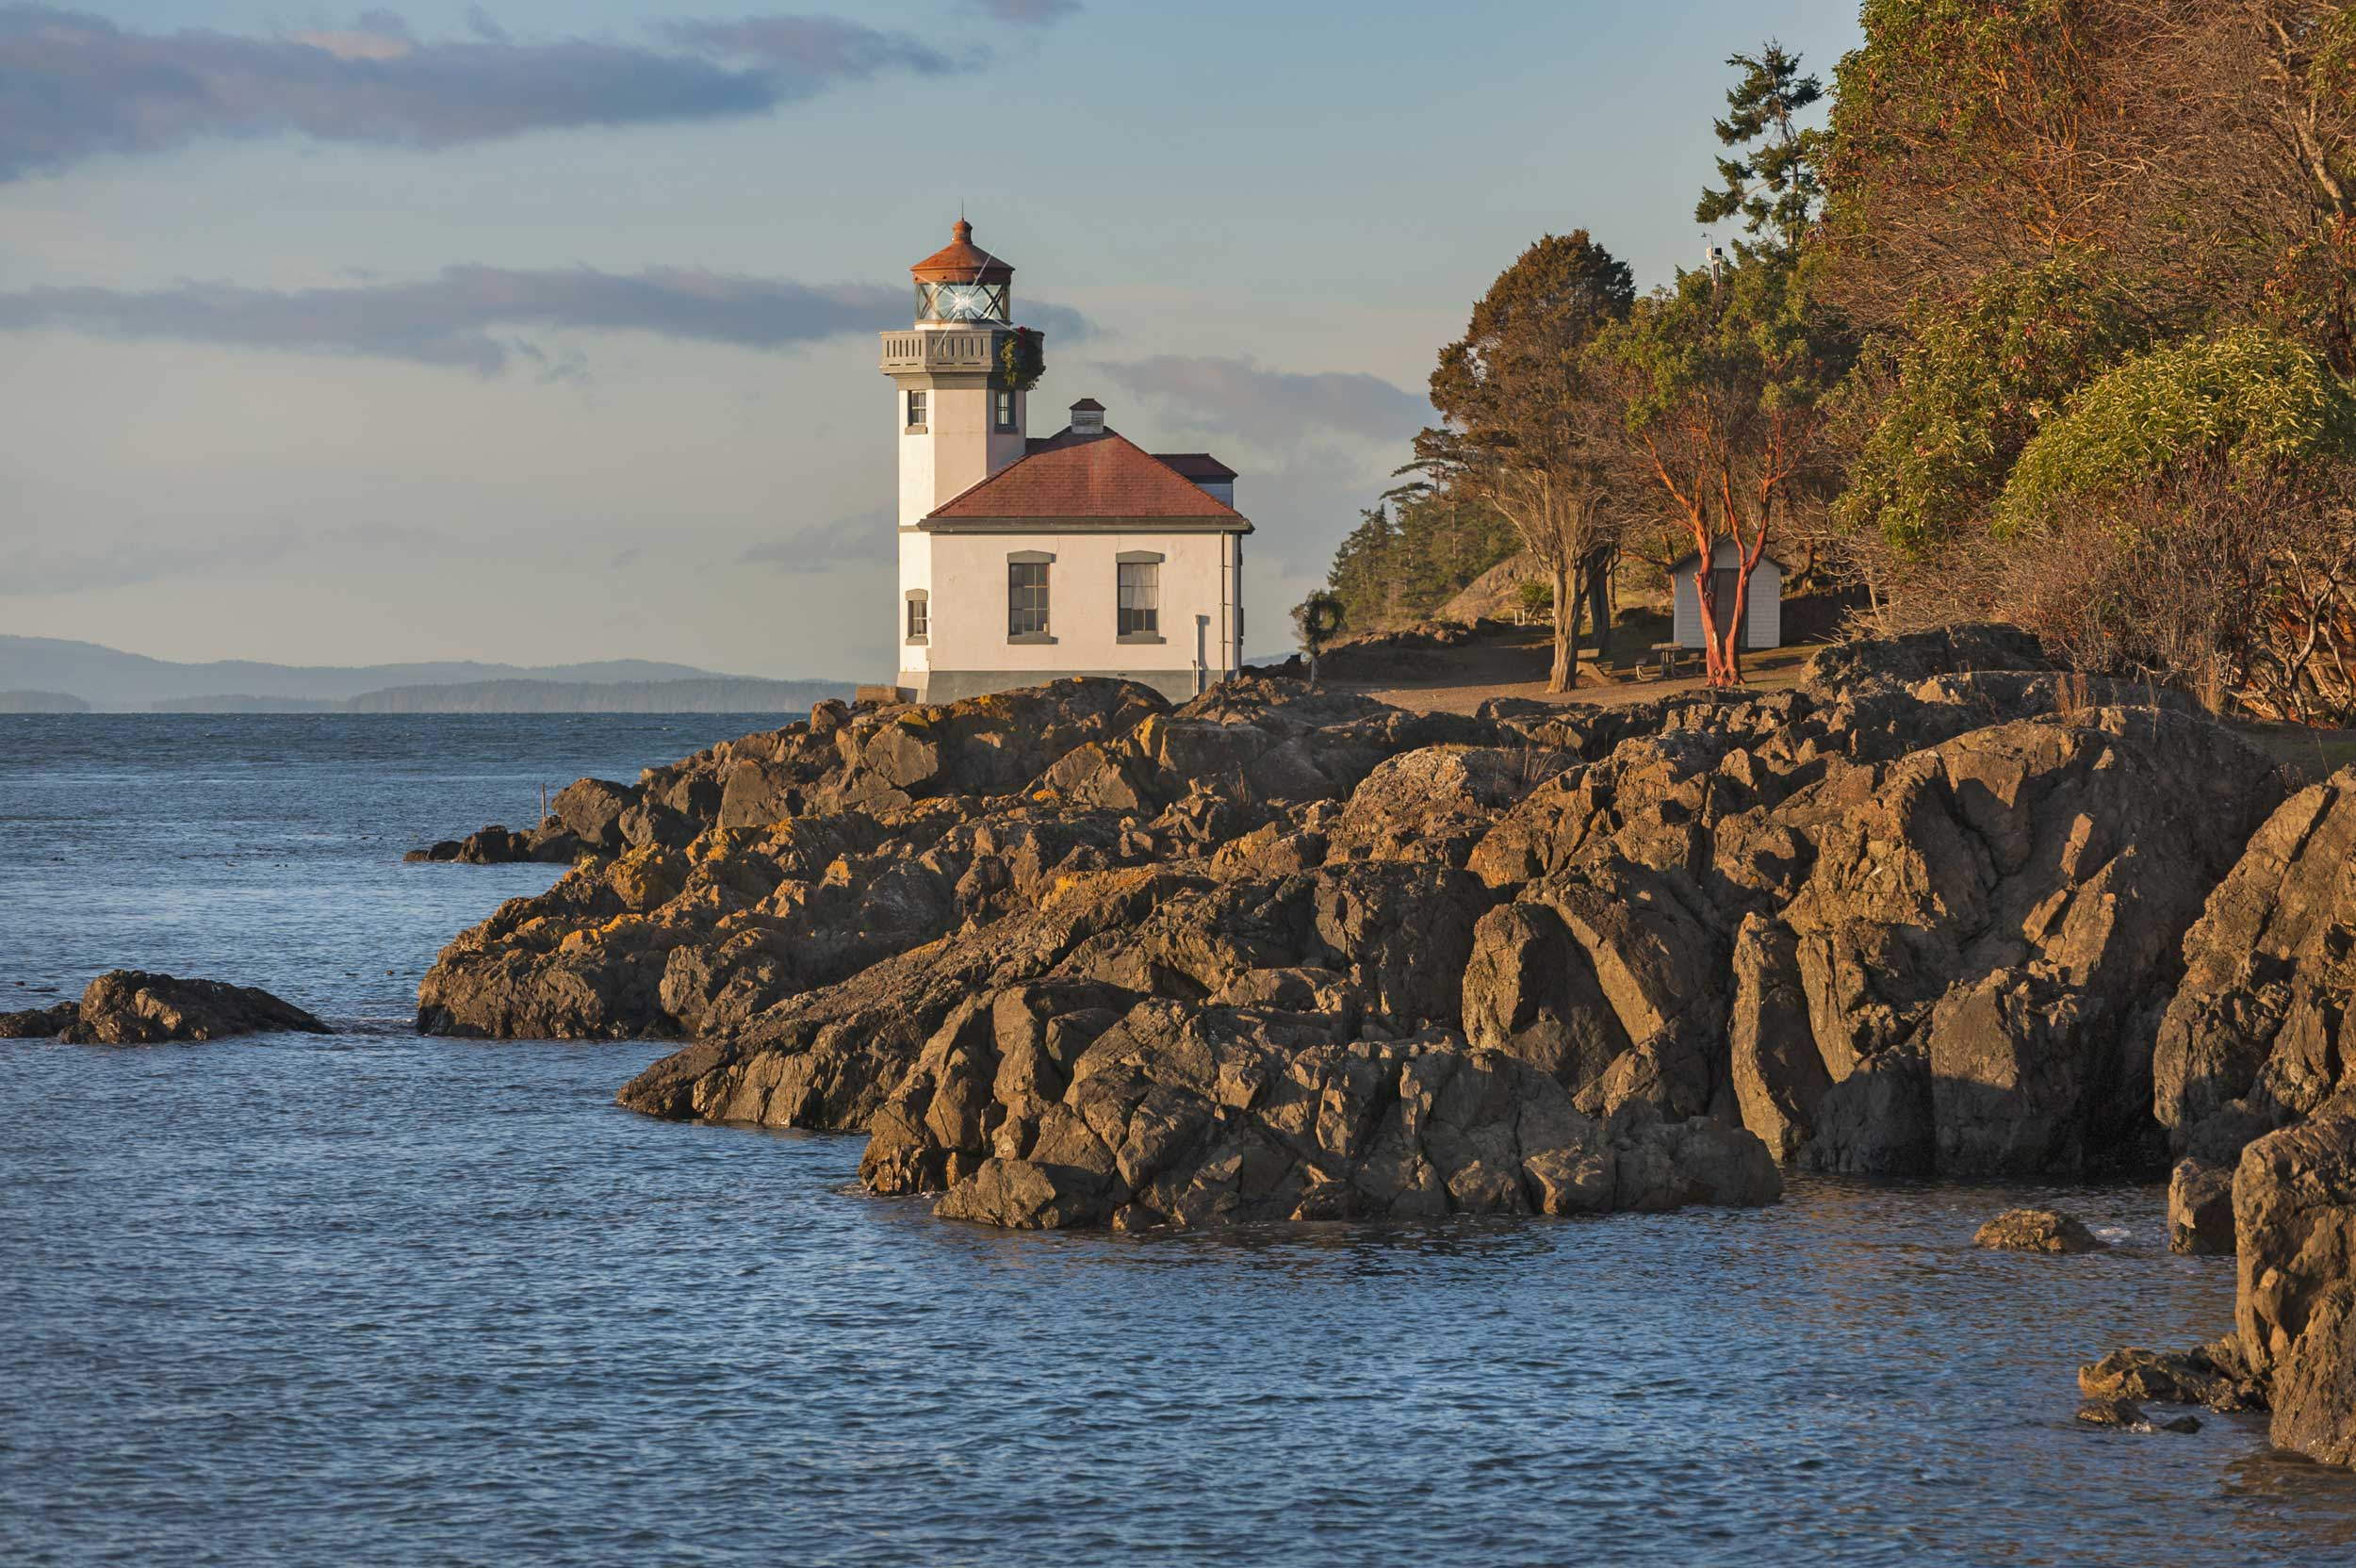 A lighthouse building set on a rocky point with trees